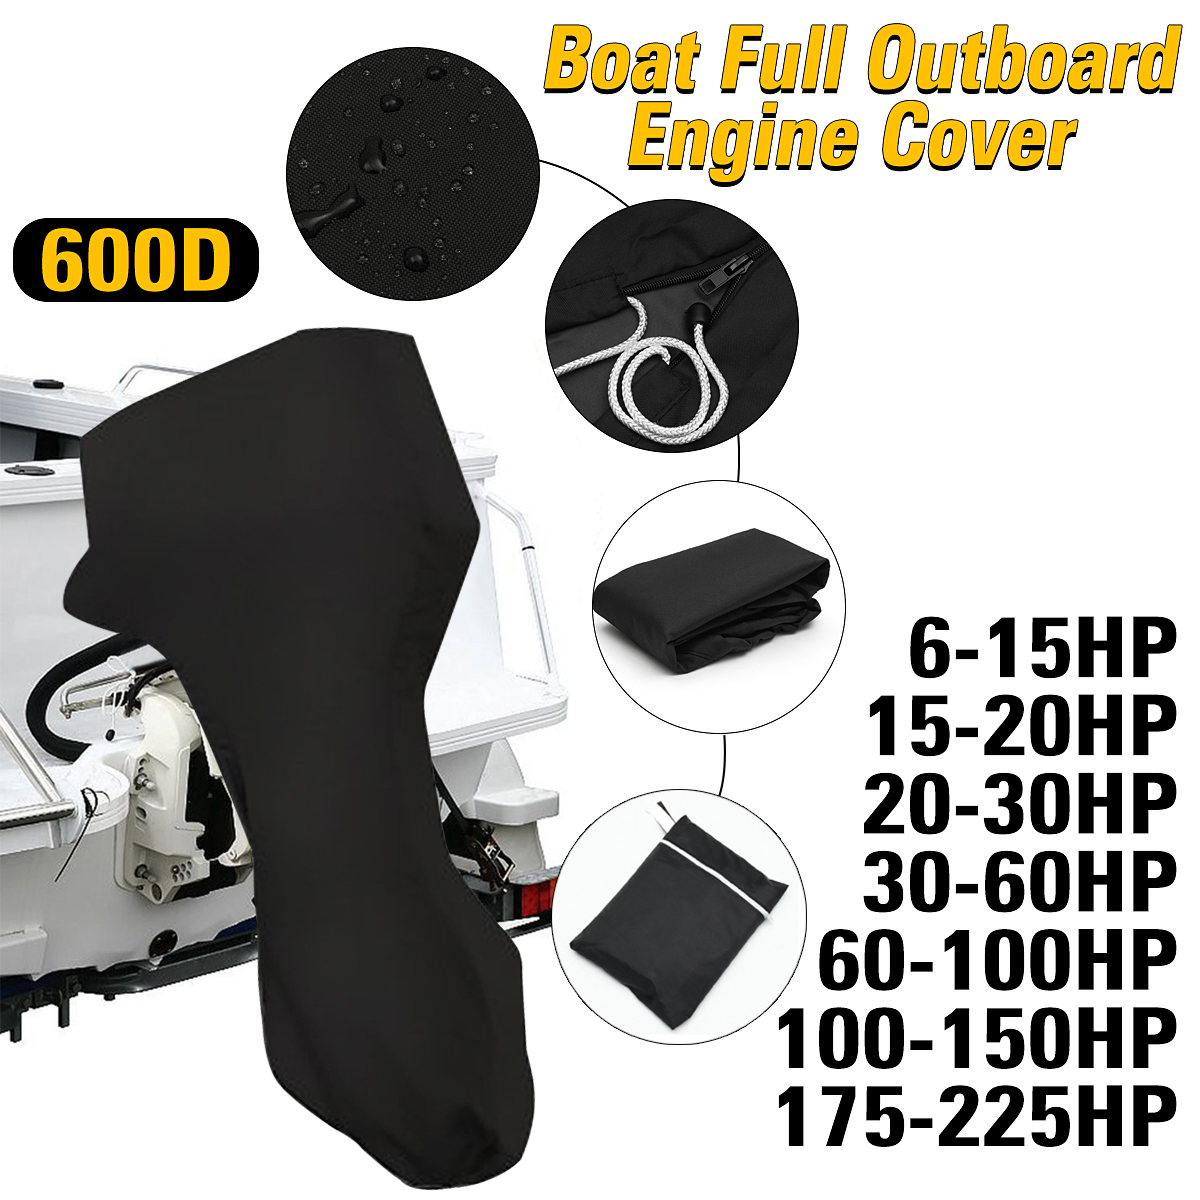 Cover Motors Boat Outboard-Engine-Protector 600D Waterproof For Black 6-225HP